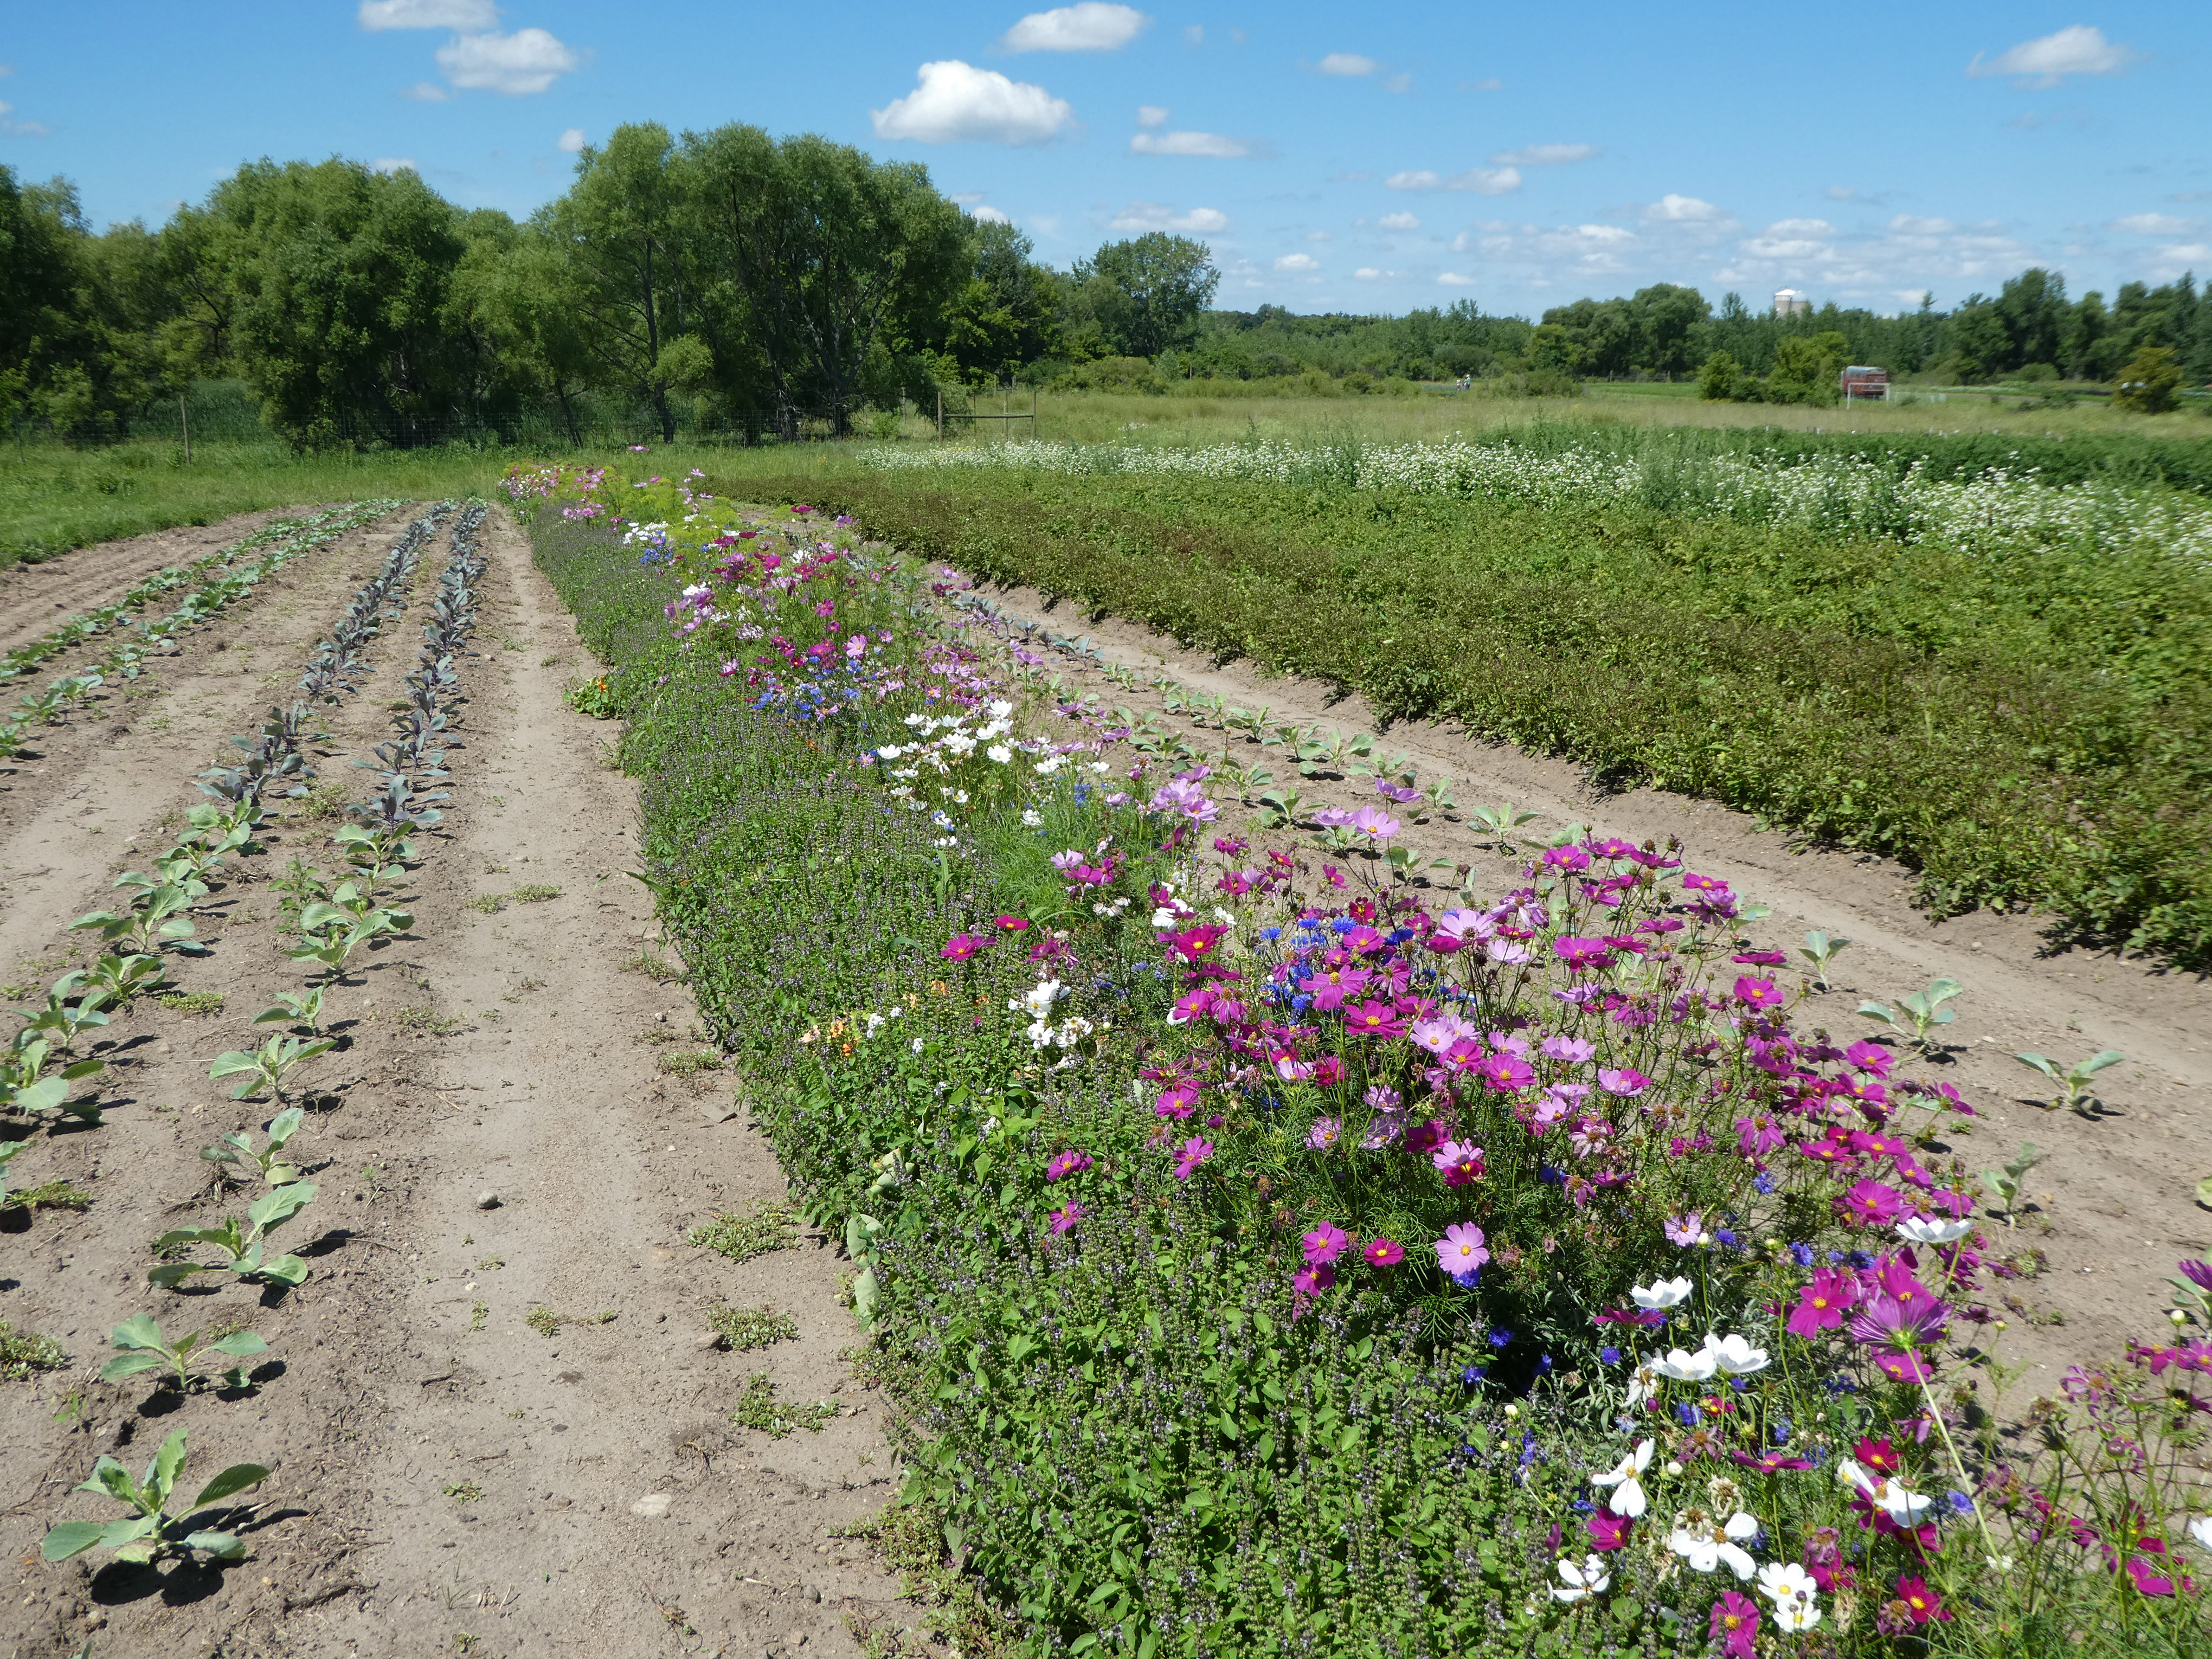 Pink flowers bloom in an insectary strip across a farm field